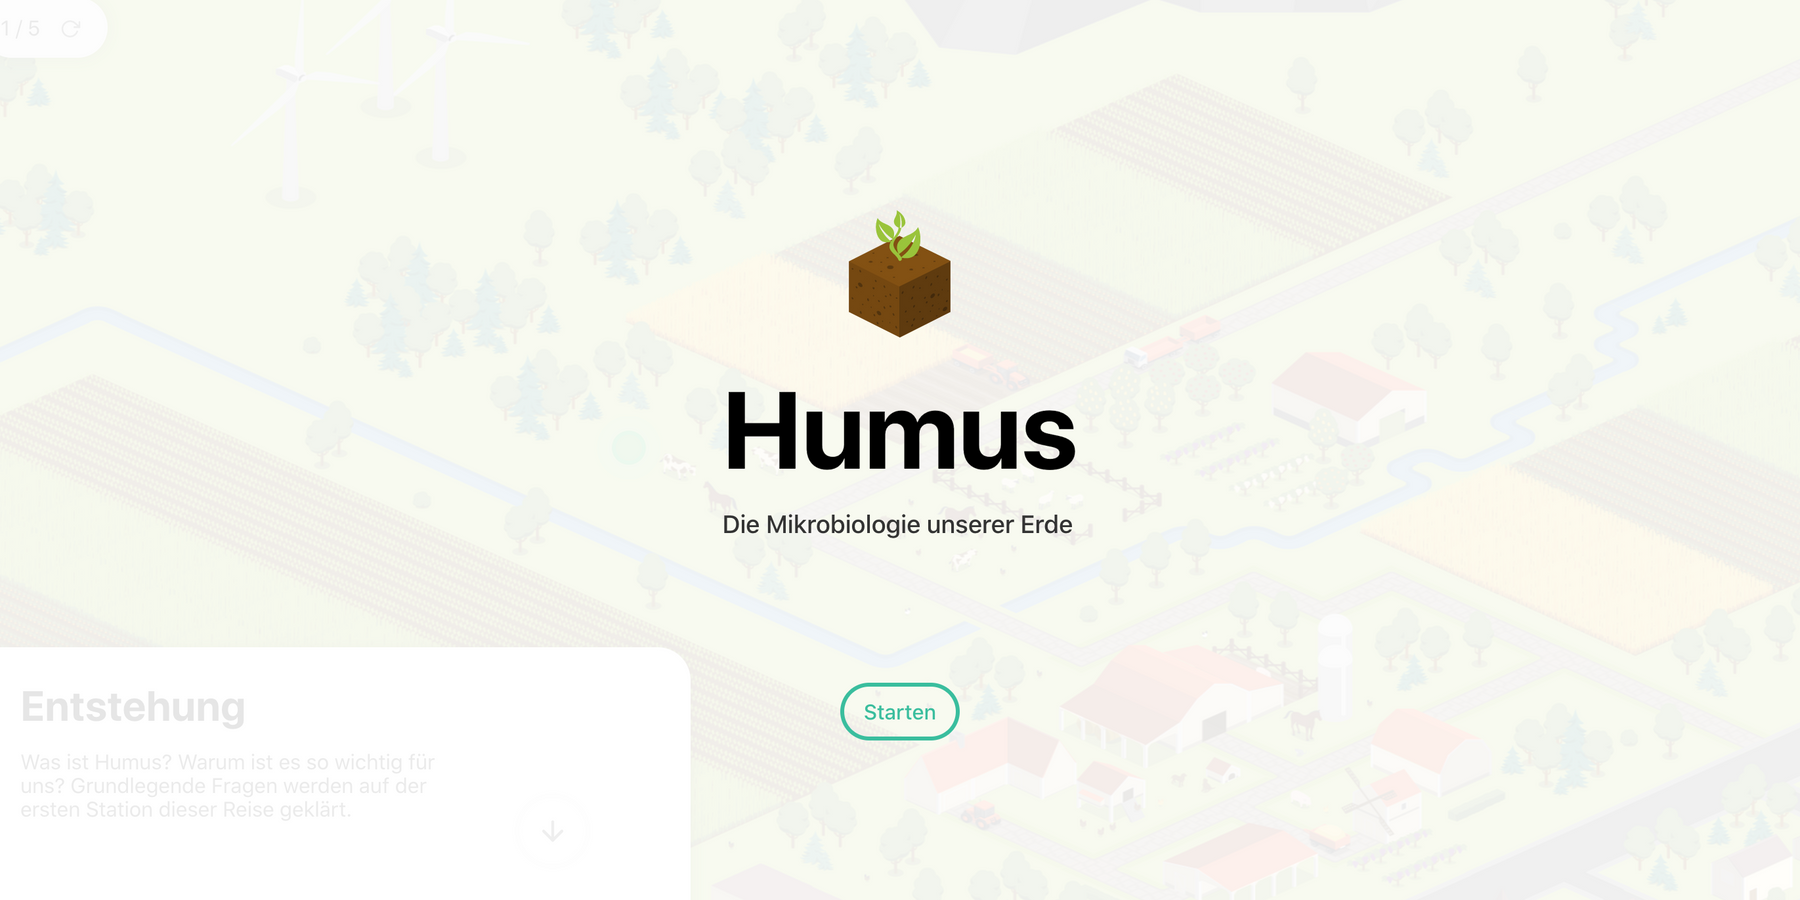 Save humus – the microbiology of our earth